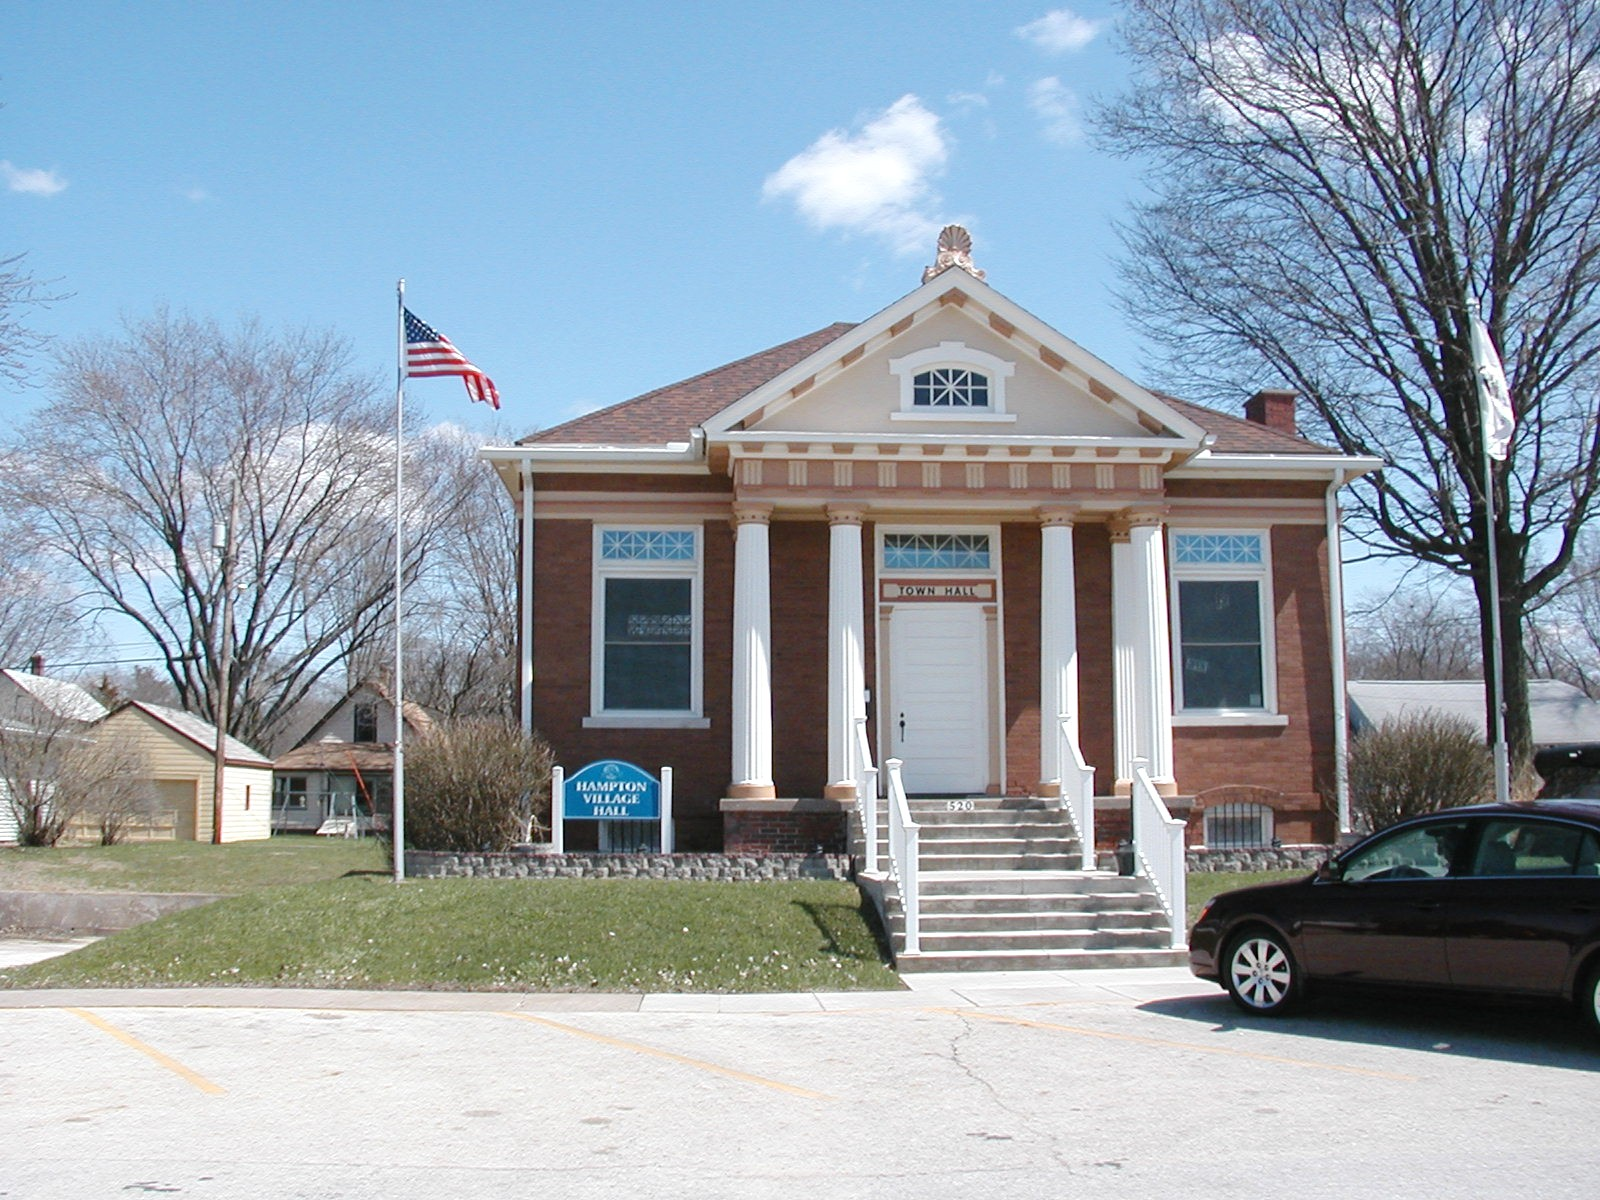 City Hall of the Village of Hampton